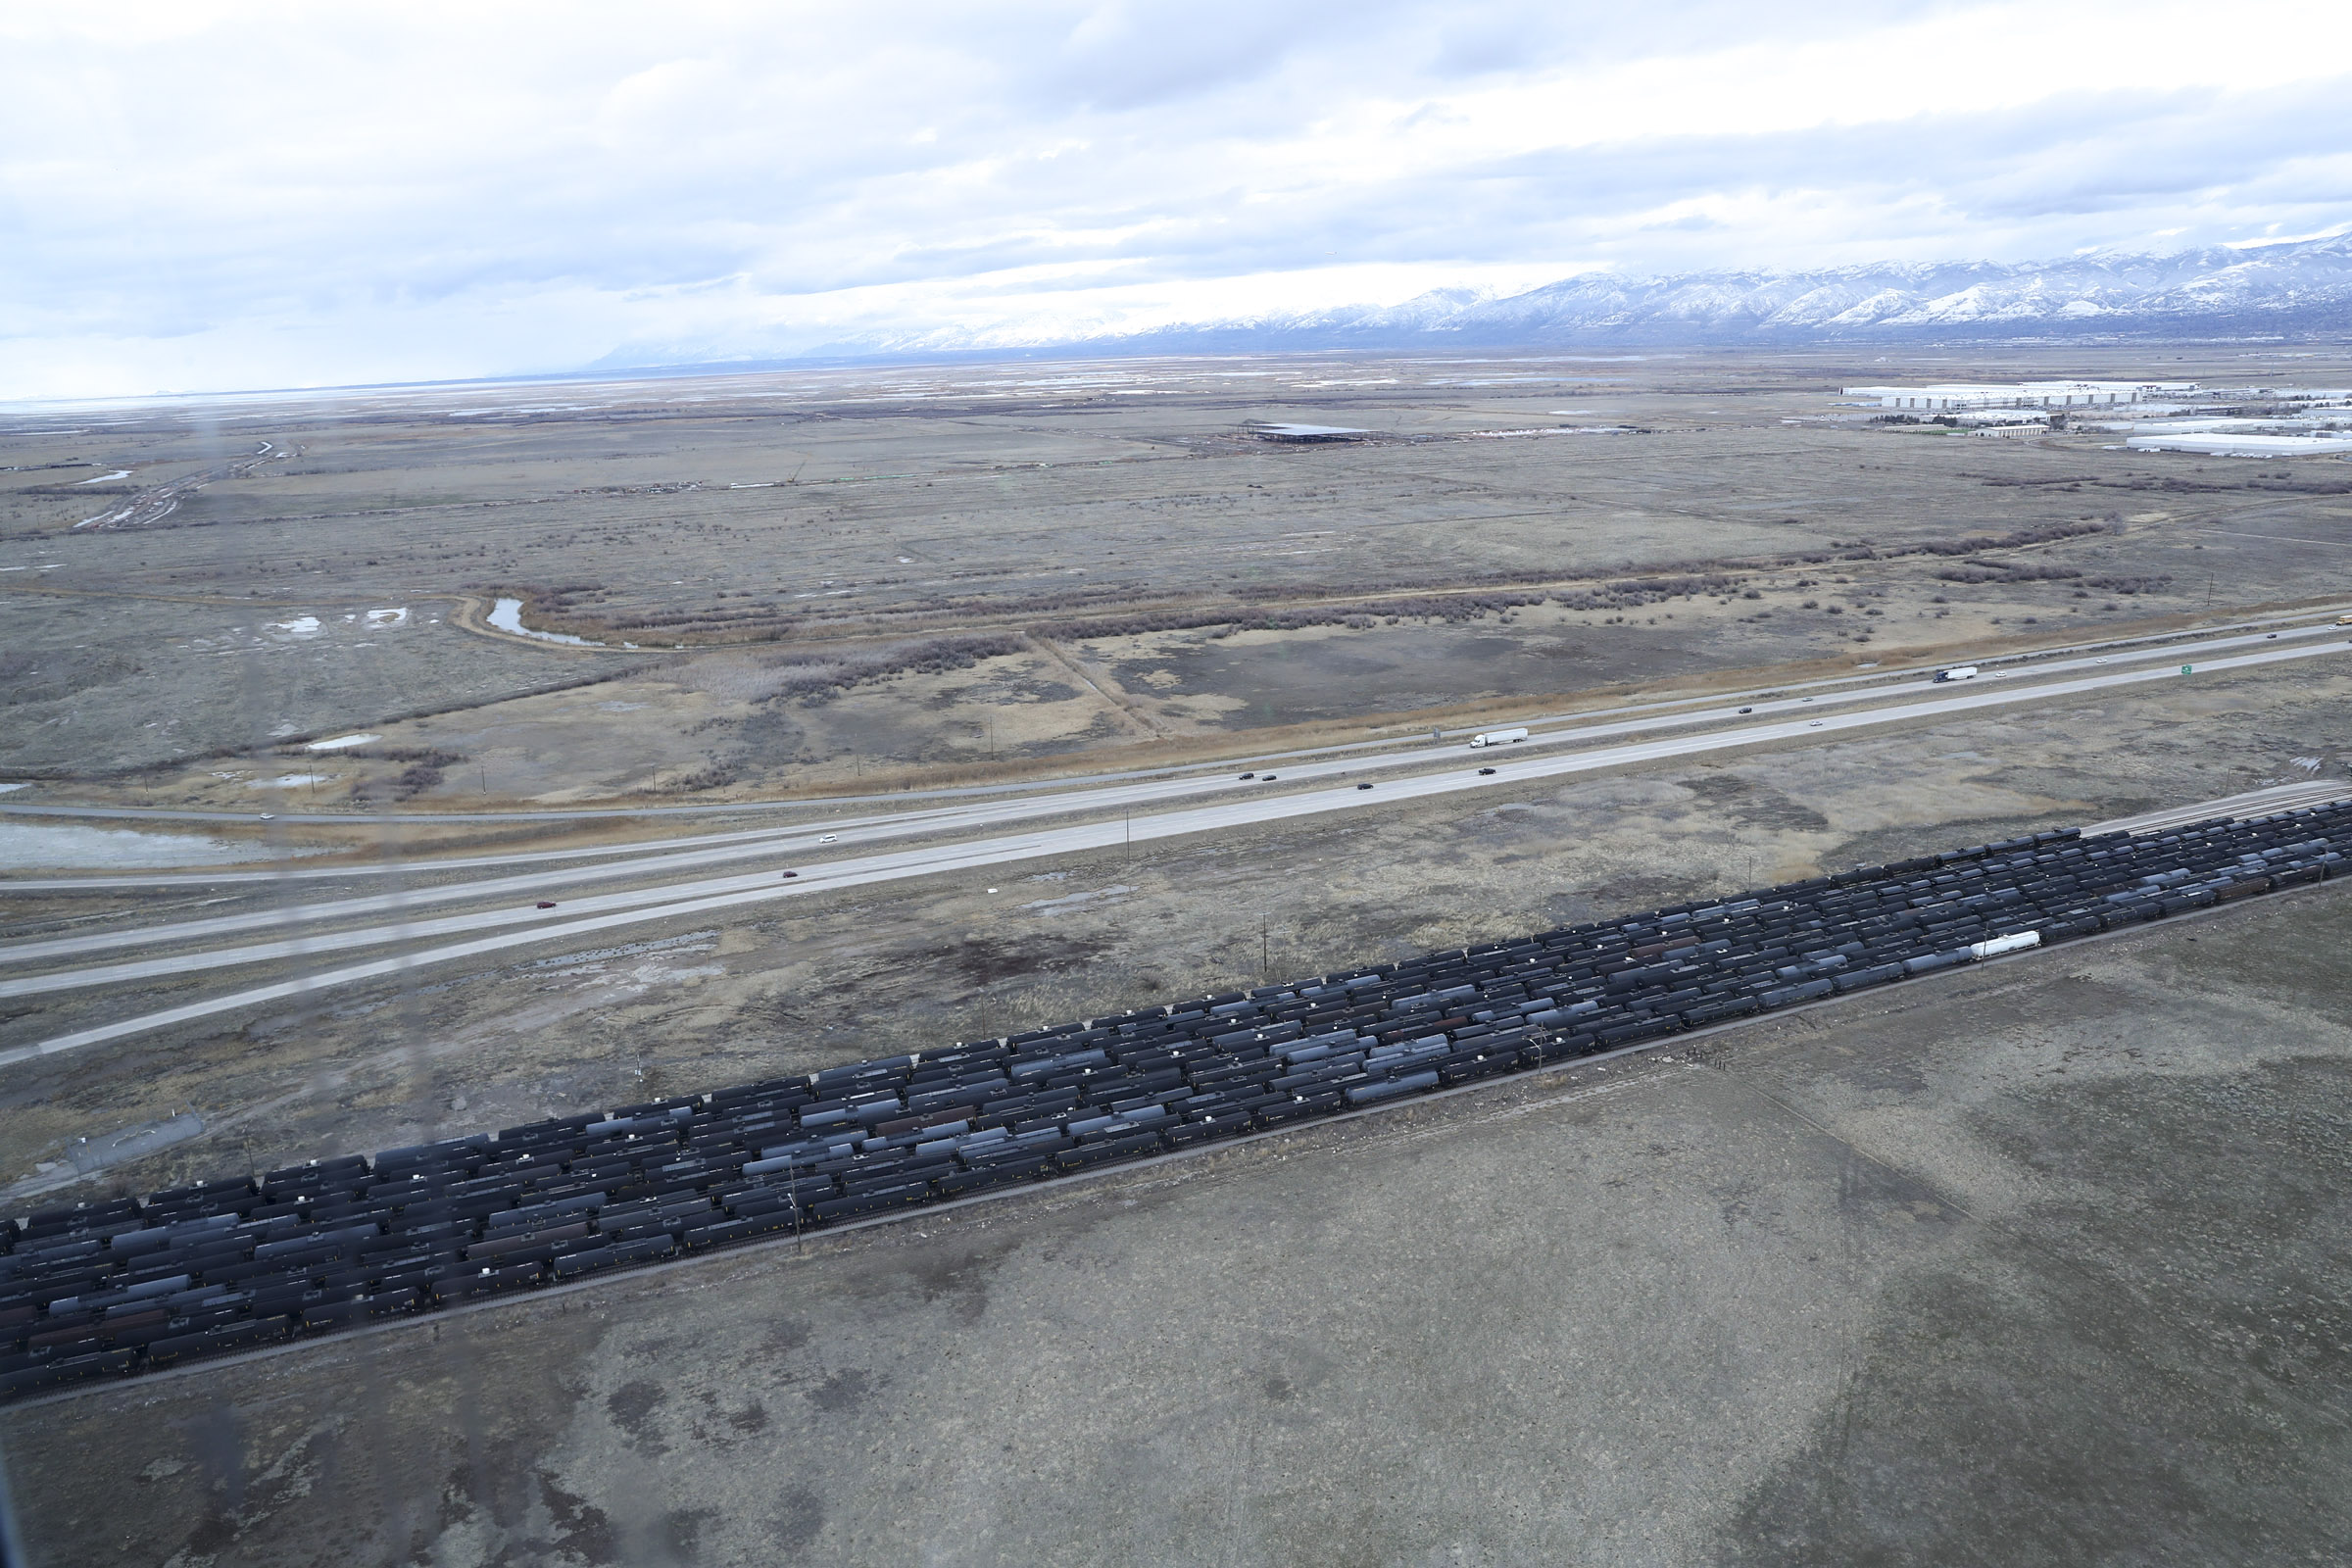 The area at I-80 near 7200 West where the Utah Inland Port is planned to be built in Salt Lake City is pictured on Monday, Jan. 27, 2020.